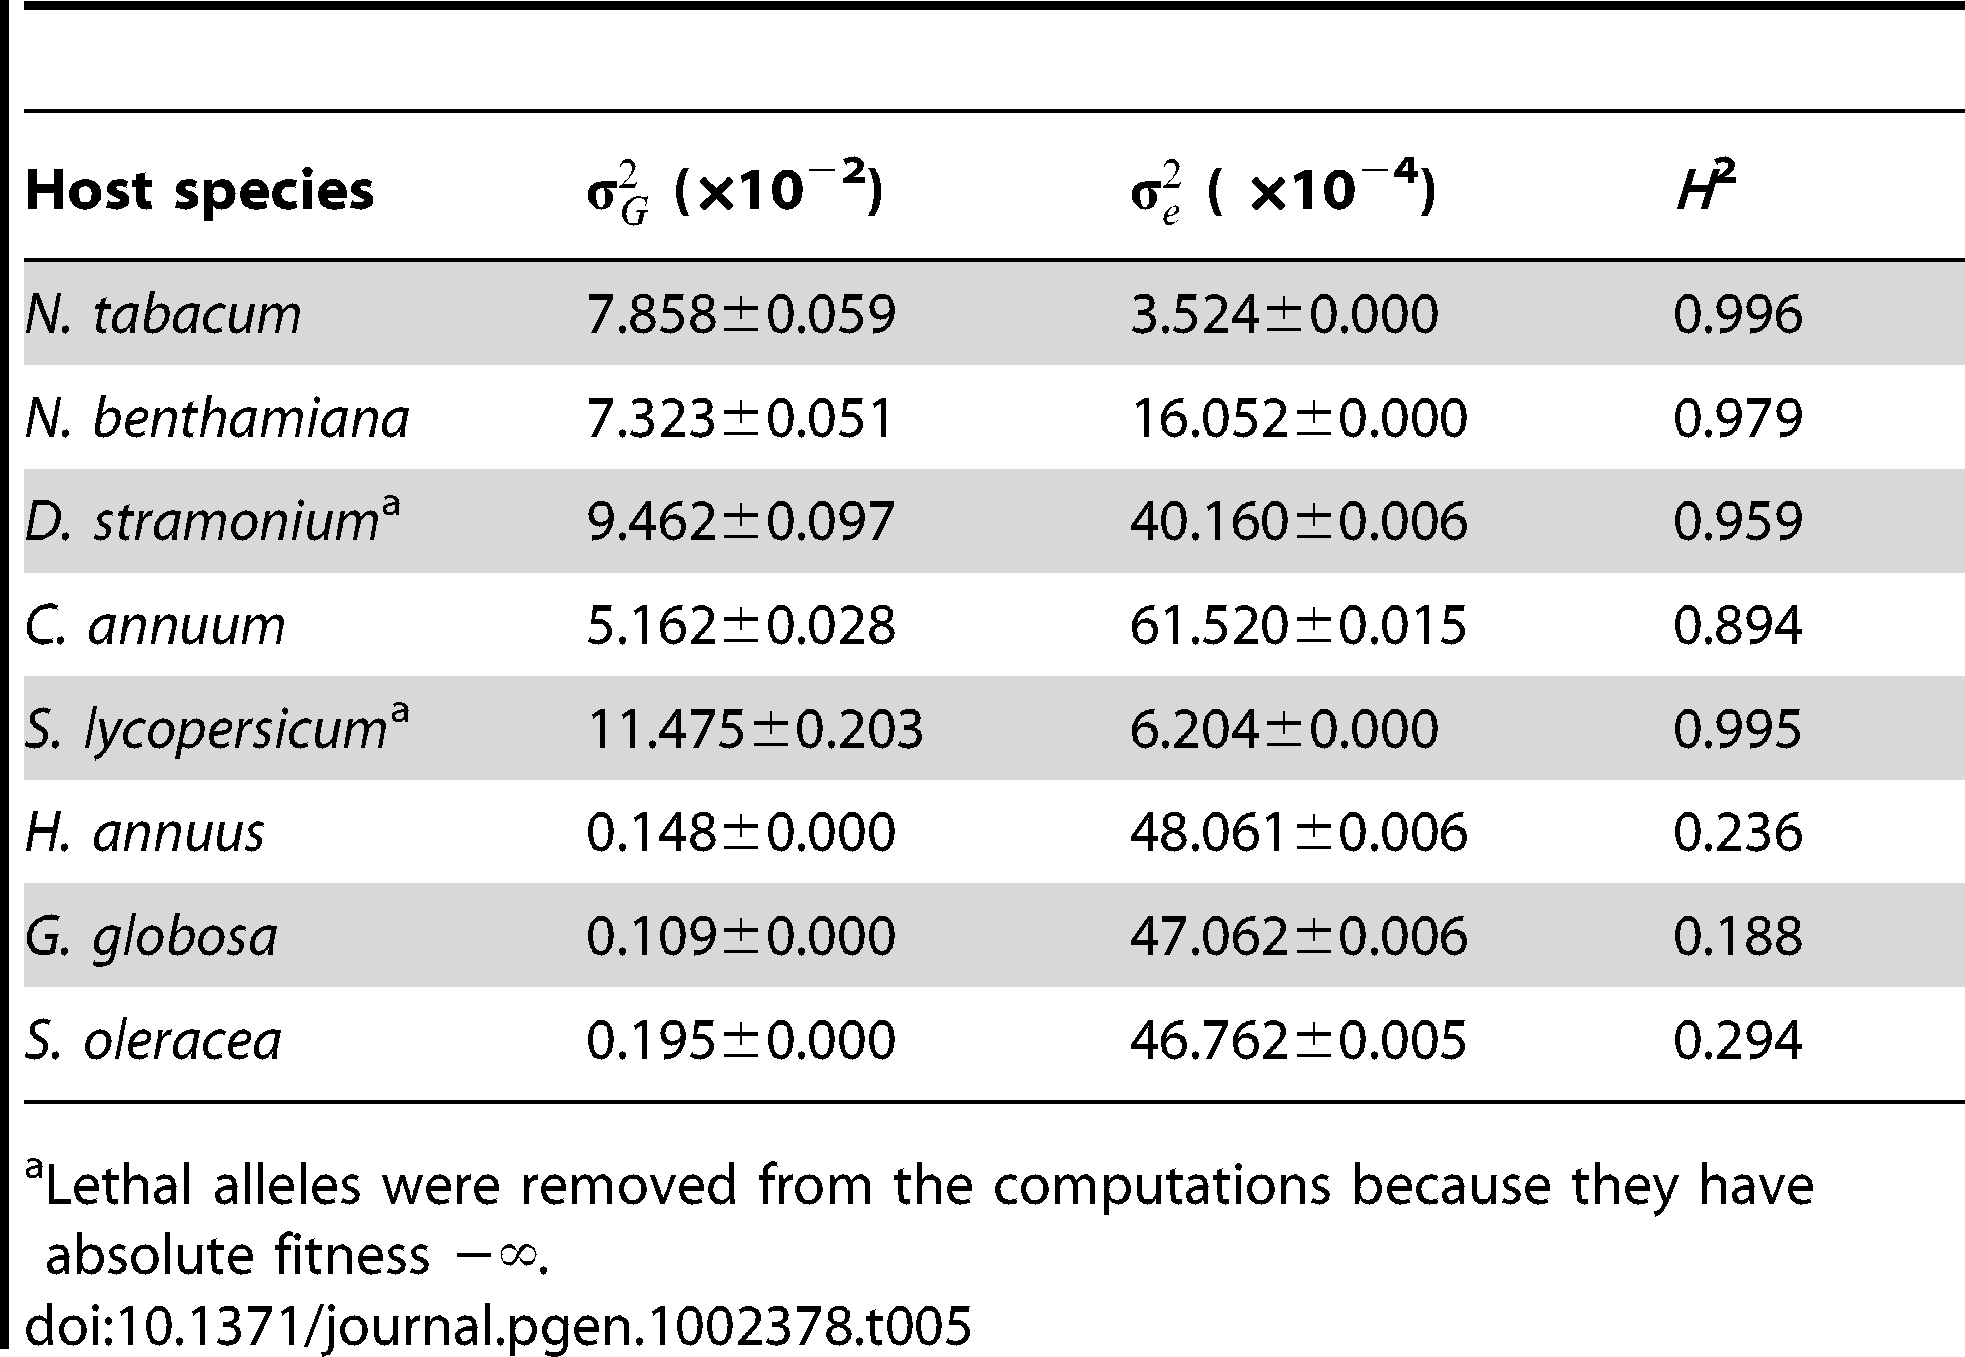 Maximum likelihood estimators for the variance components of absolute fitness estimated on each host (± variance of the estimator).